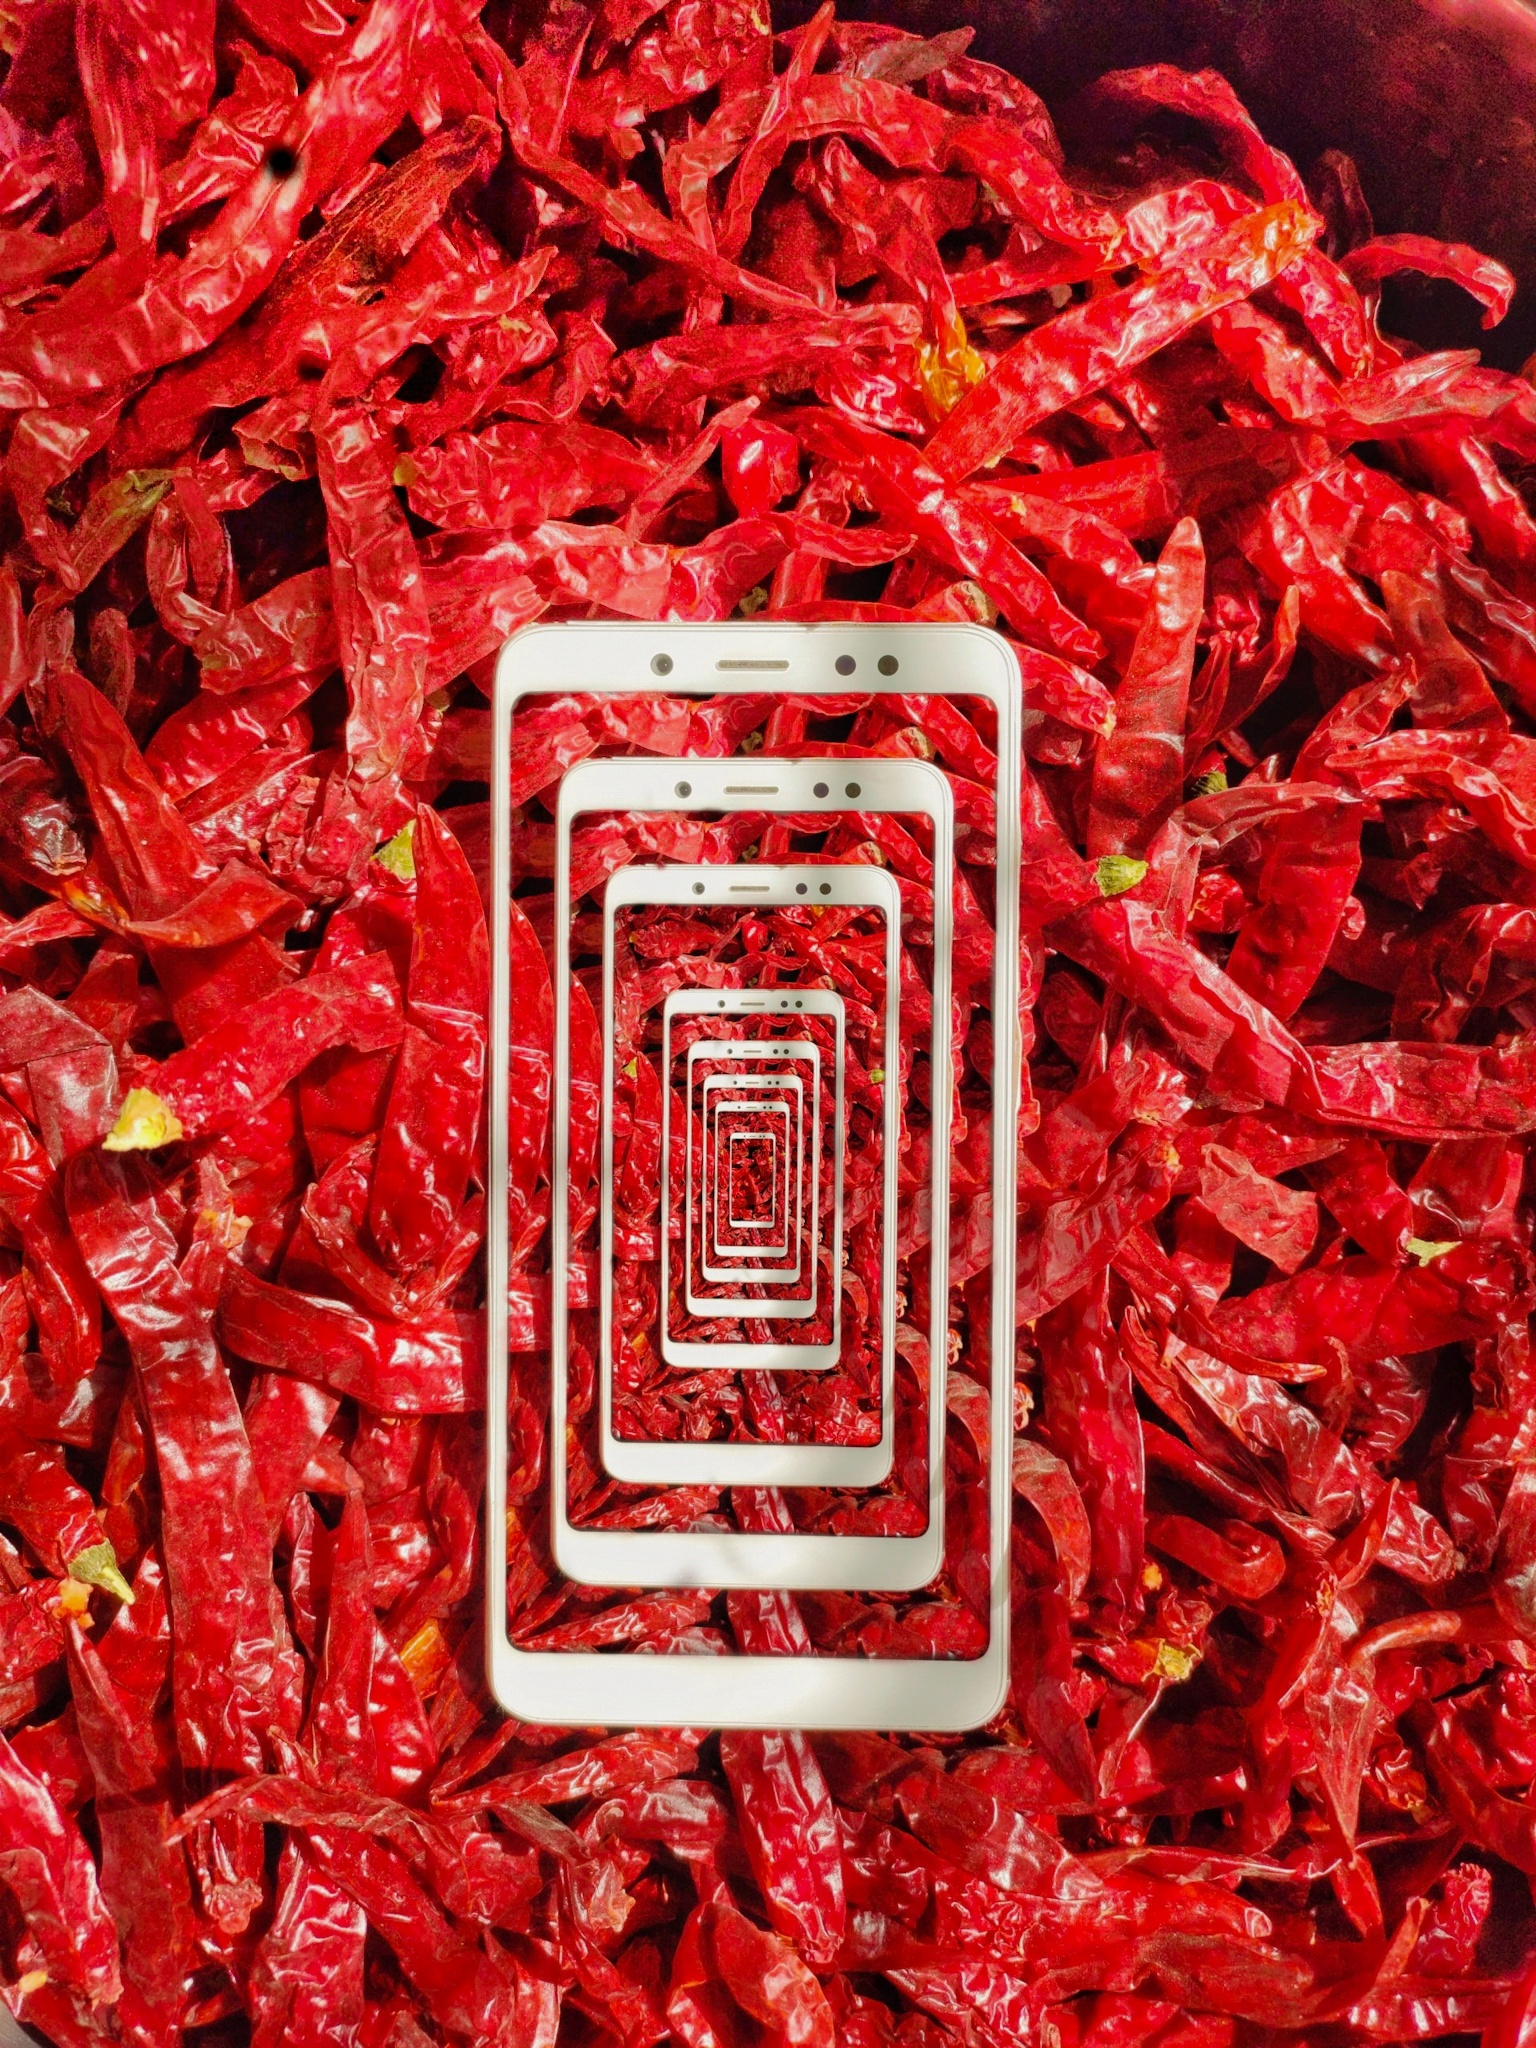 Mobile frames on red chillies